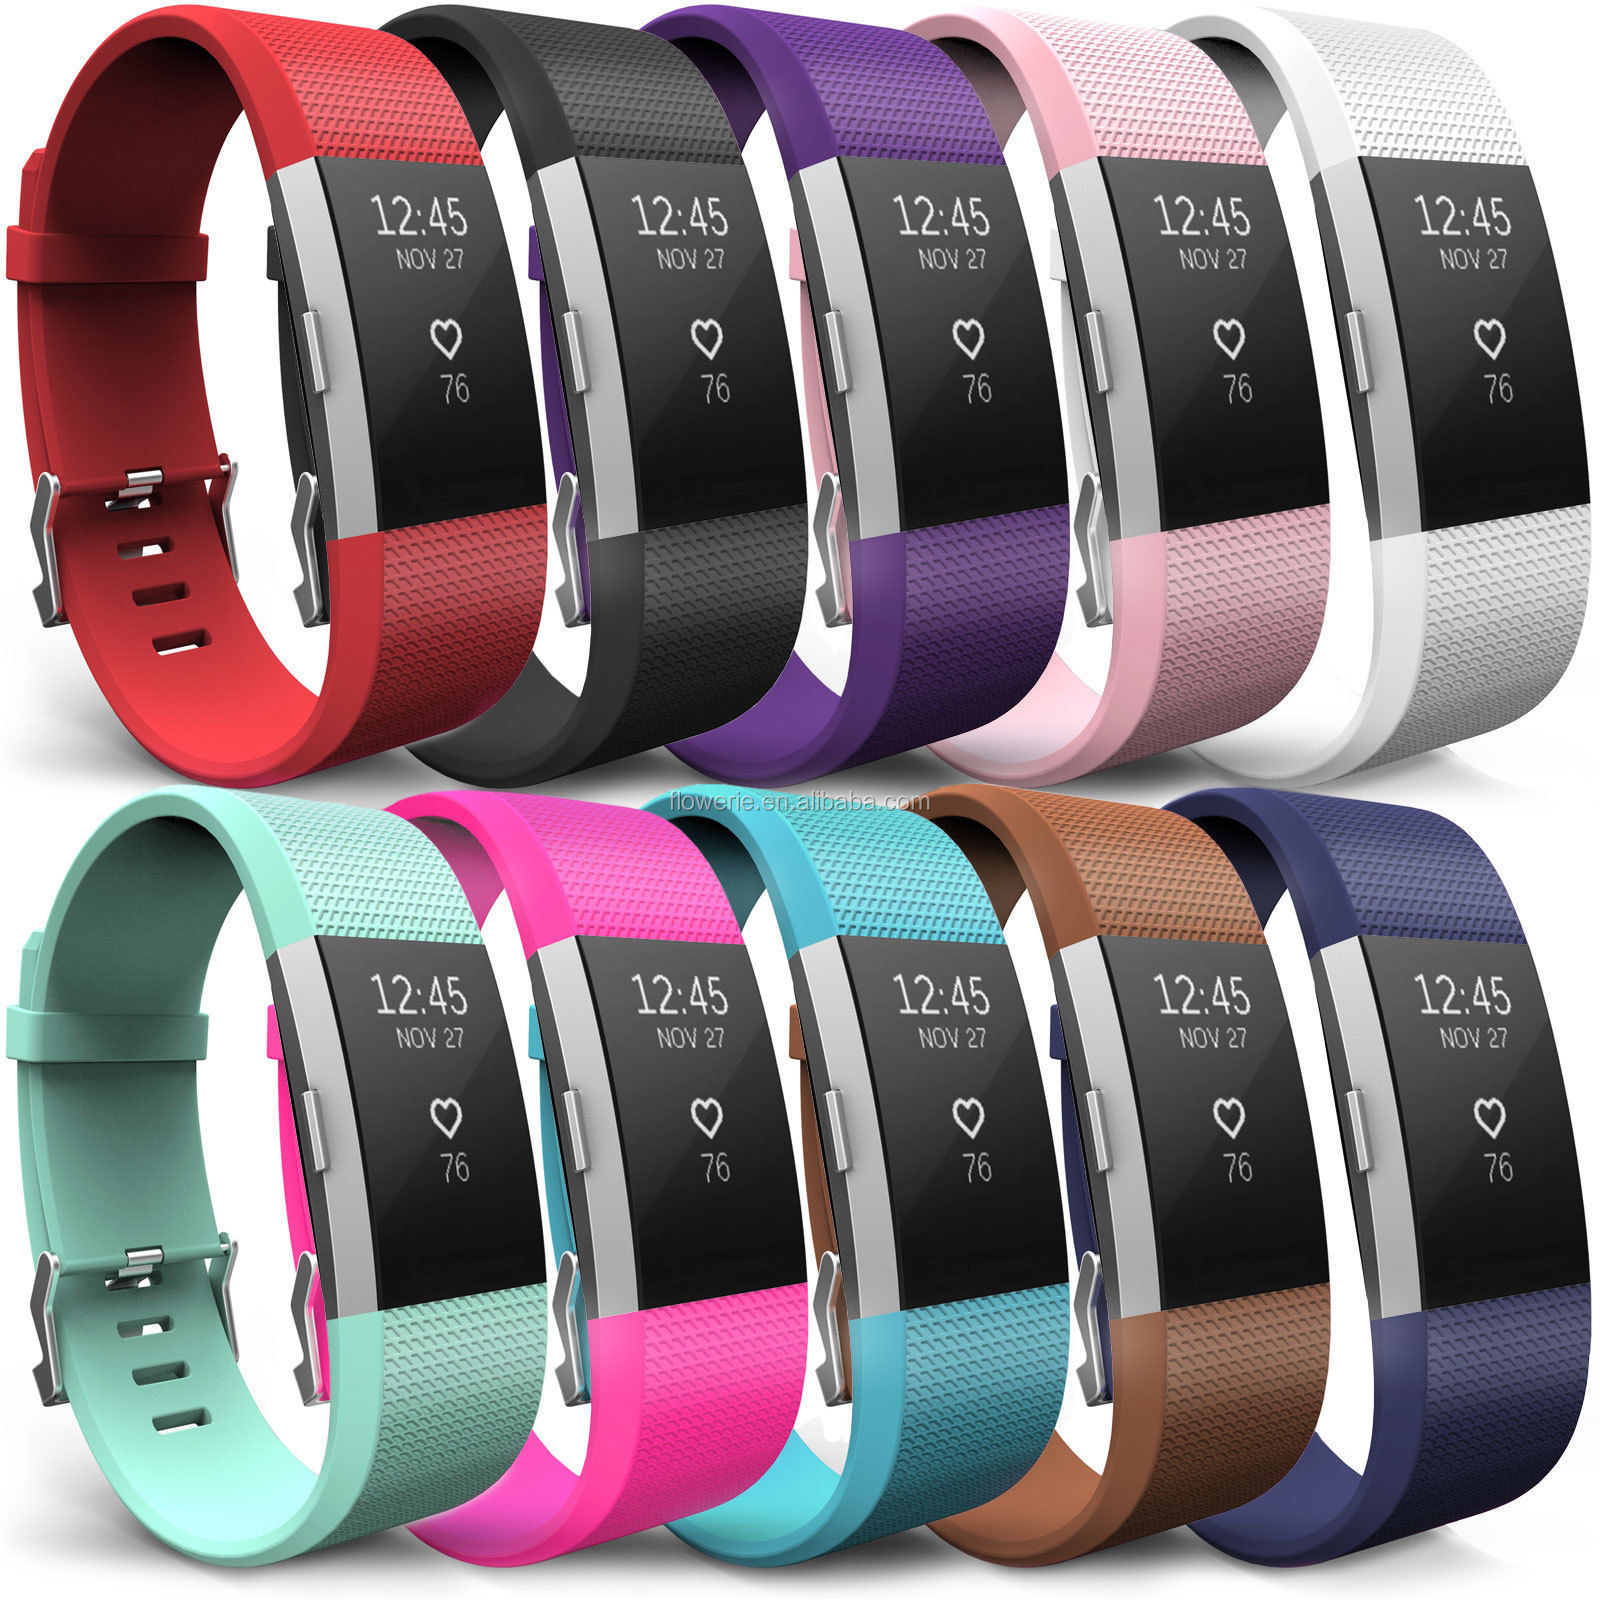 Amazon Hot Selling Soft Silicone Sport Watch Strap Band Replacement For  Fitbit Charge 2,Strap For Fitbit Charge 2 Watch Band - Buy Strap For Fitbit